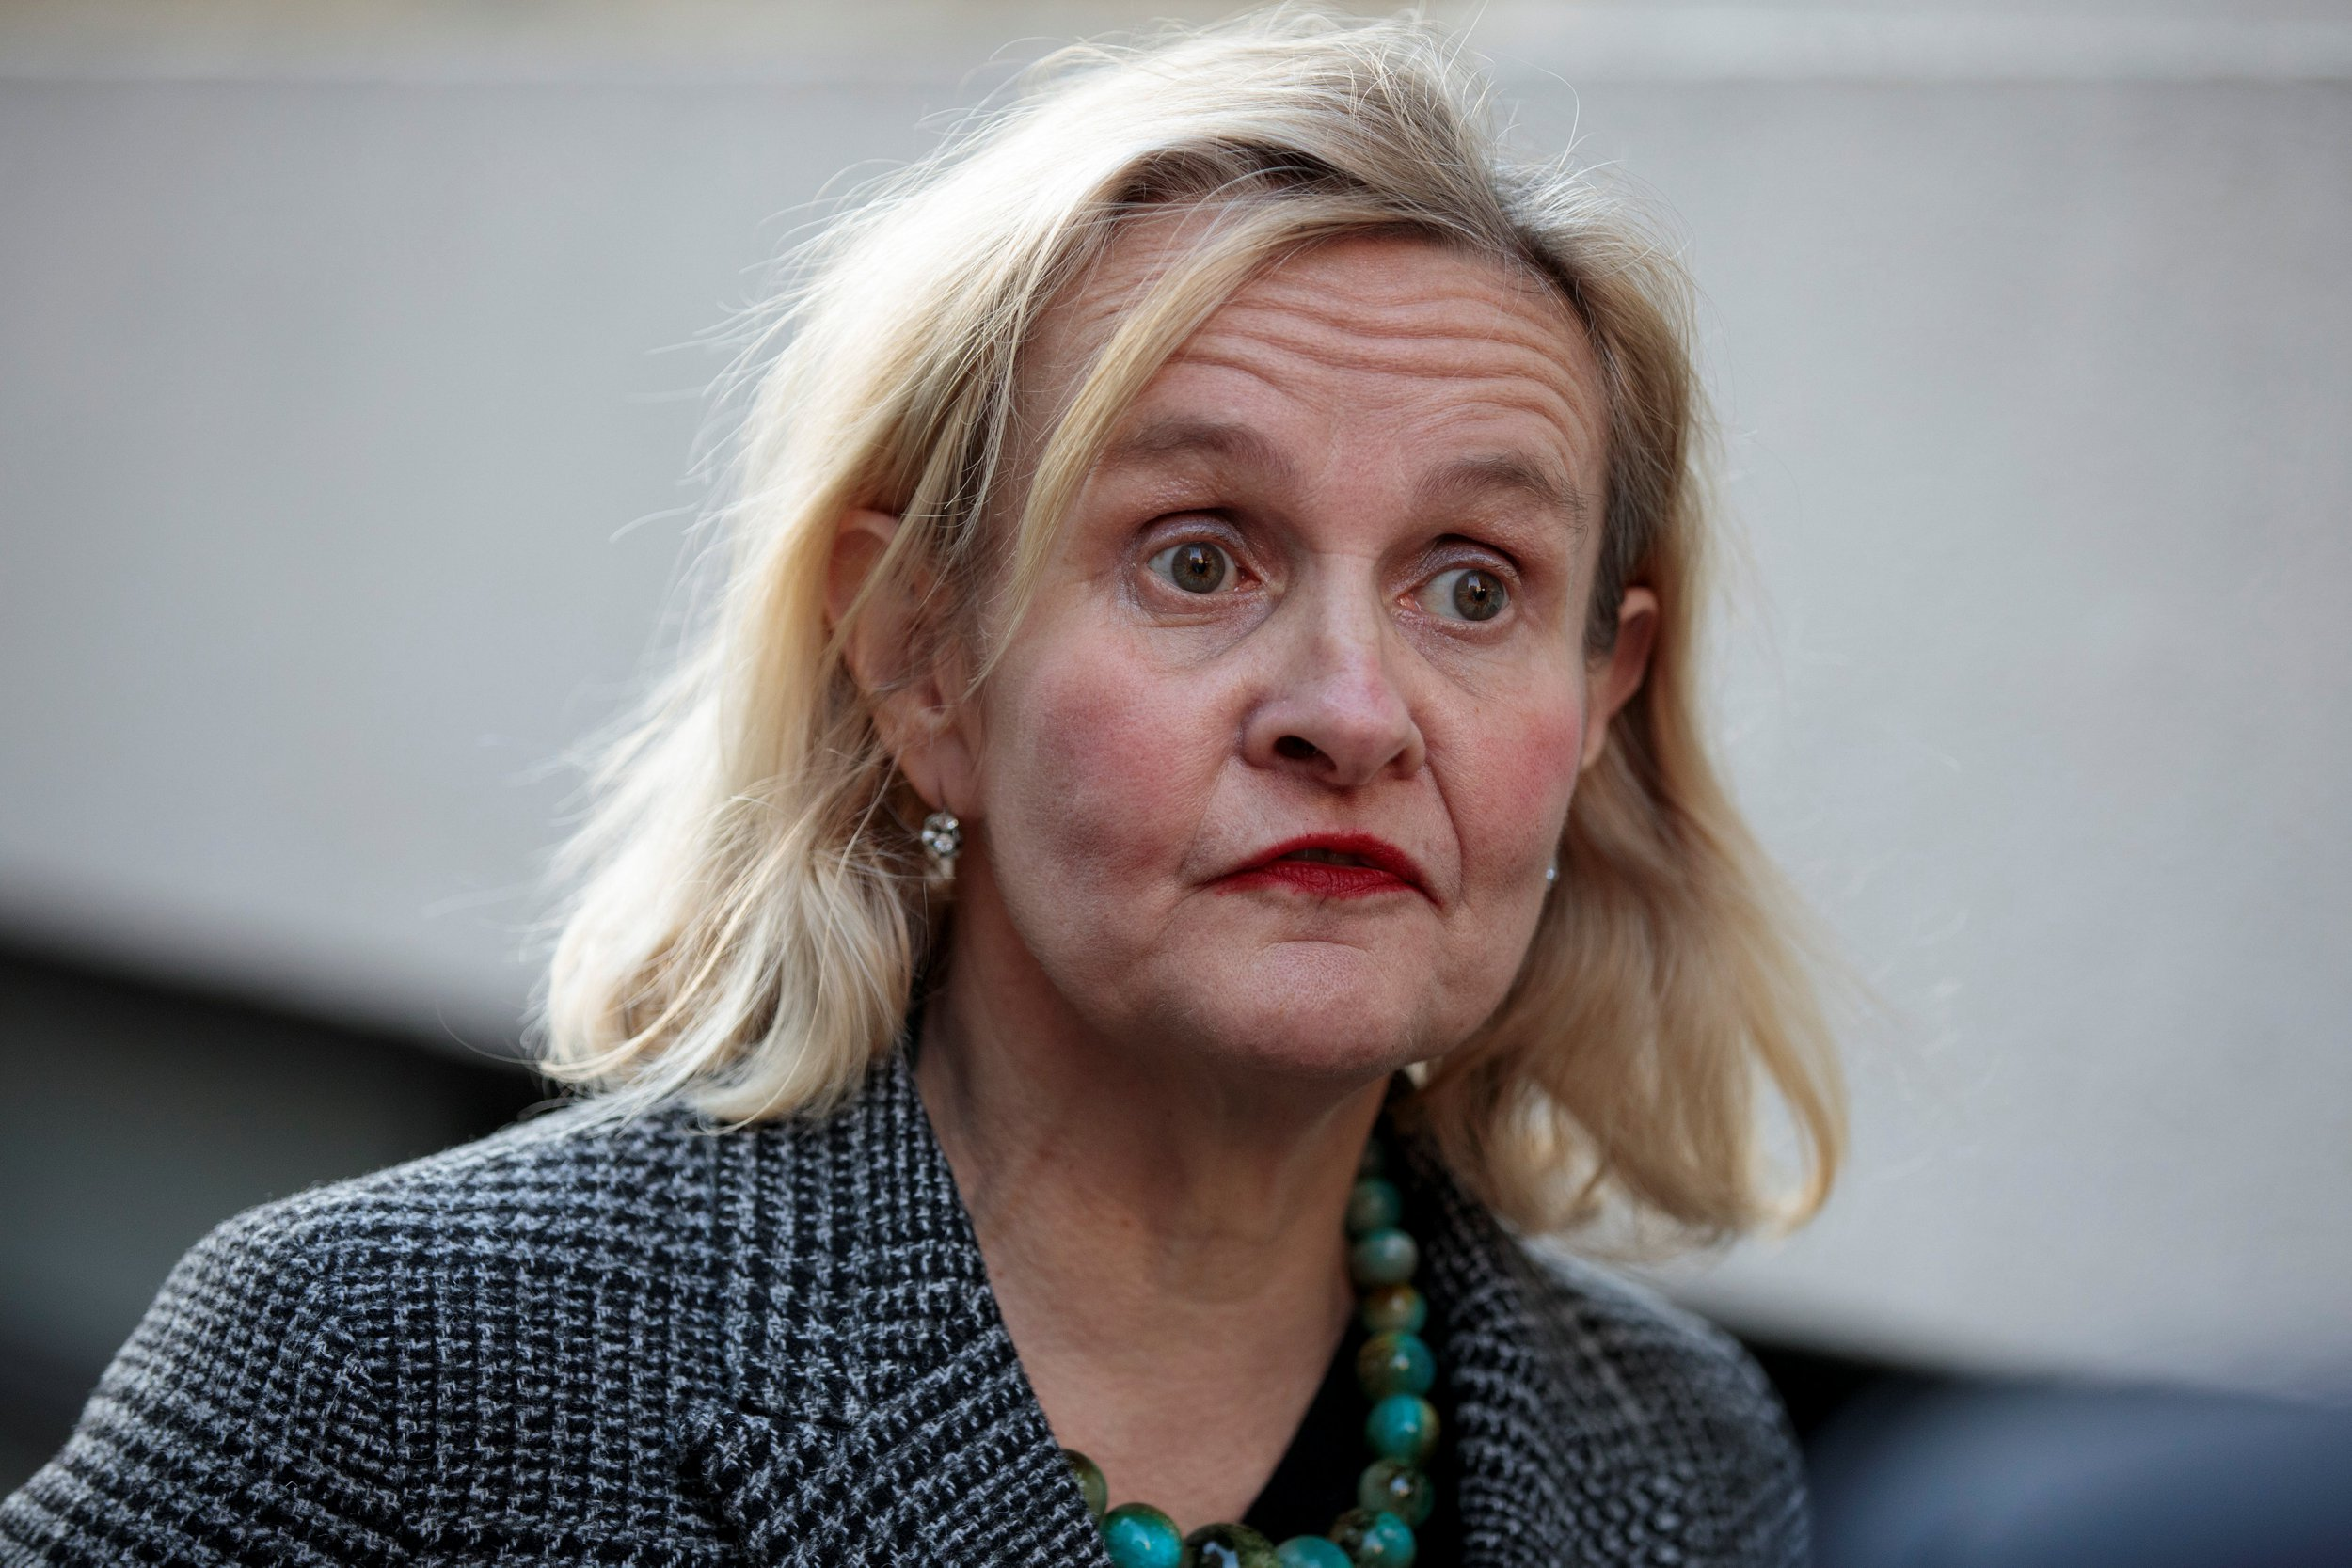 Catherine Blaiklock, founder of the Brexit Party talks during an interview in central London, Britain, February 21, 2019. Picture taken February 21, 2019. REUTERS/Simon Dawson